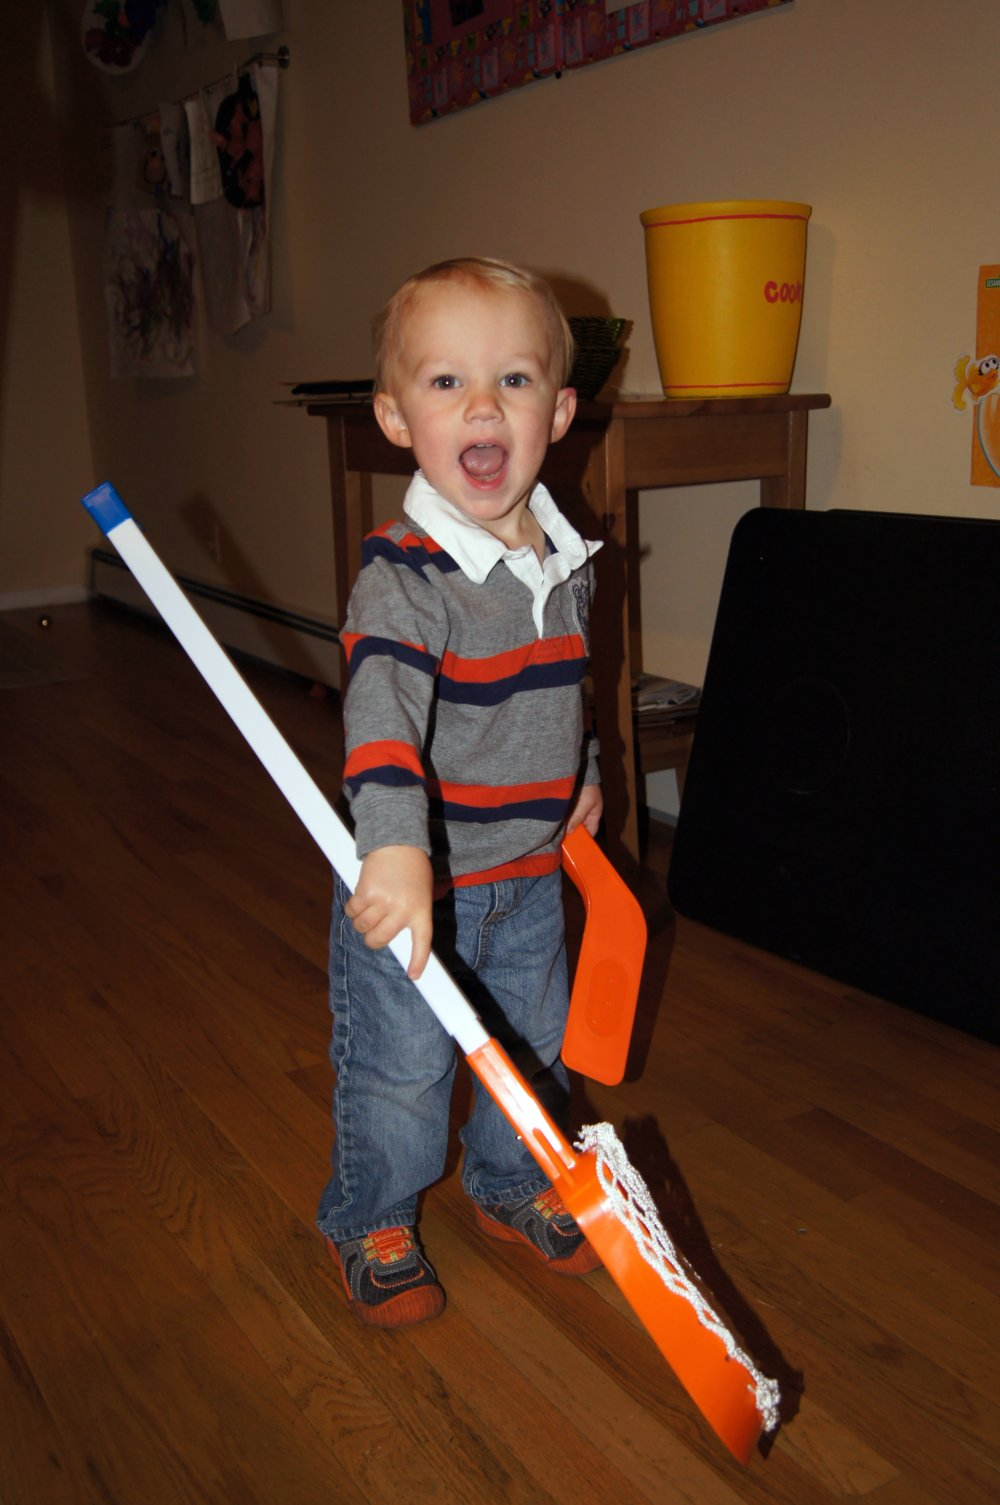 Toddler With Lacrosse Stick